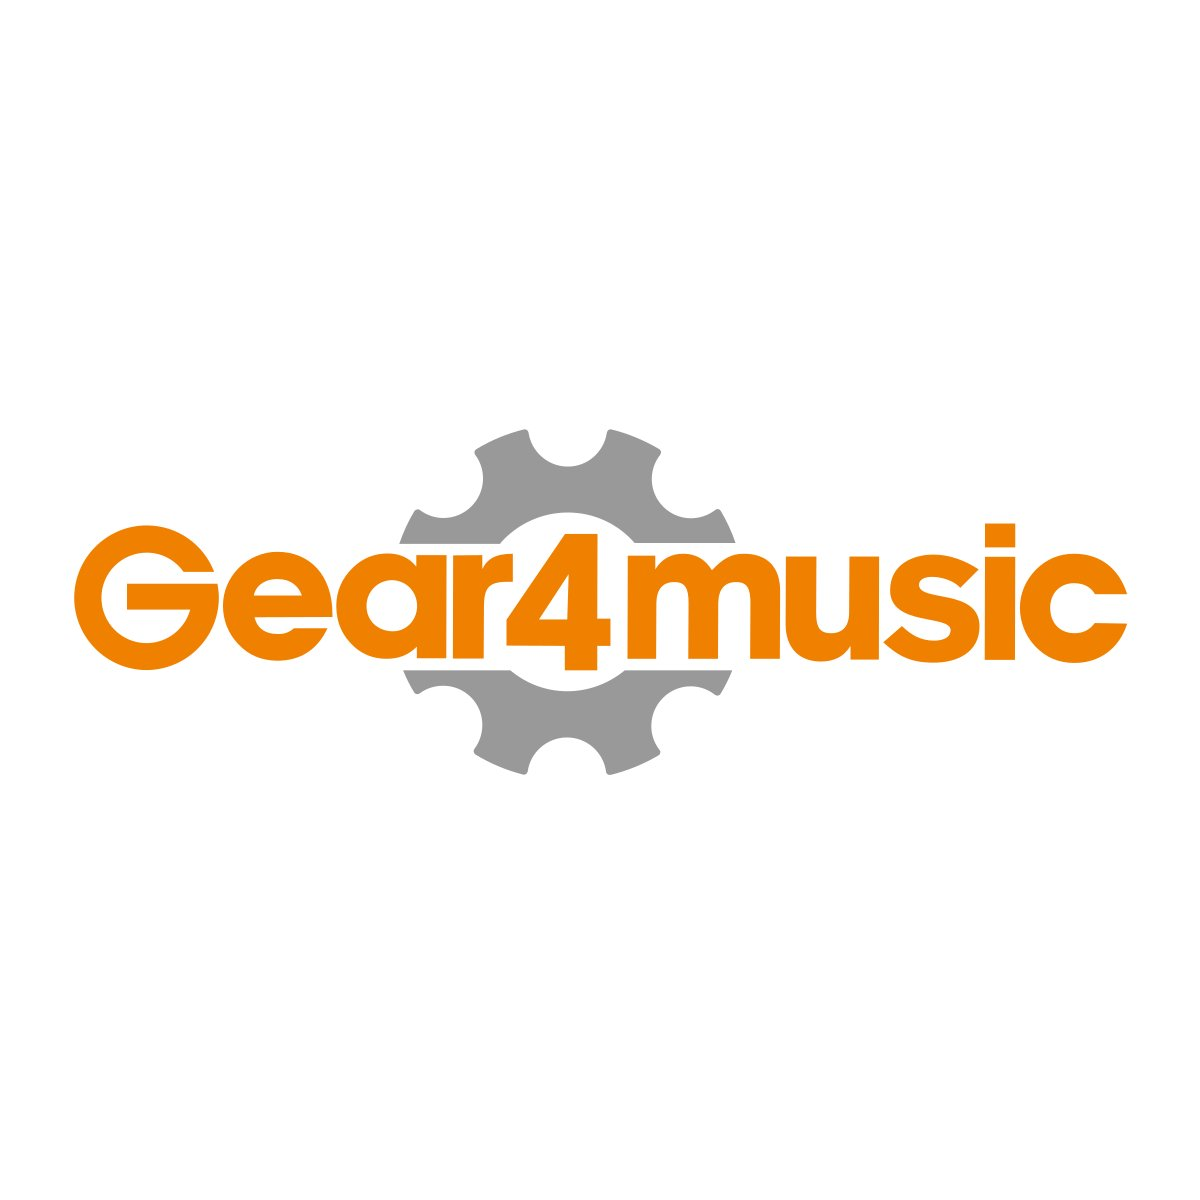 Stand by Gear4music